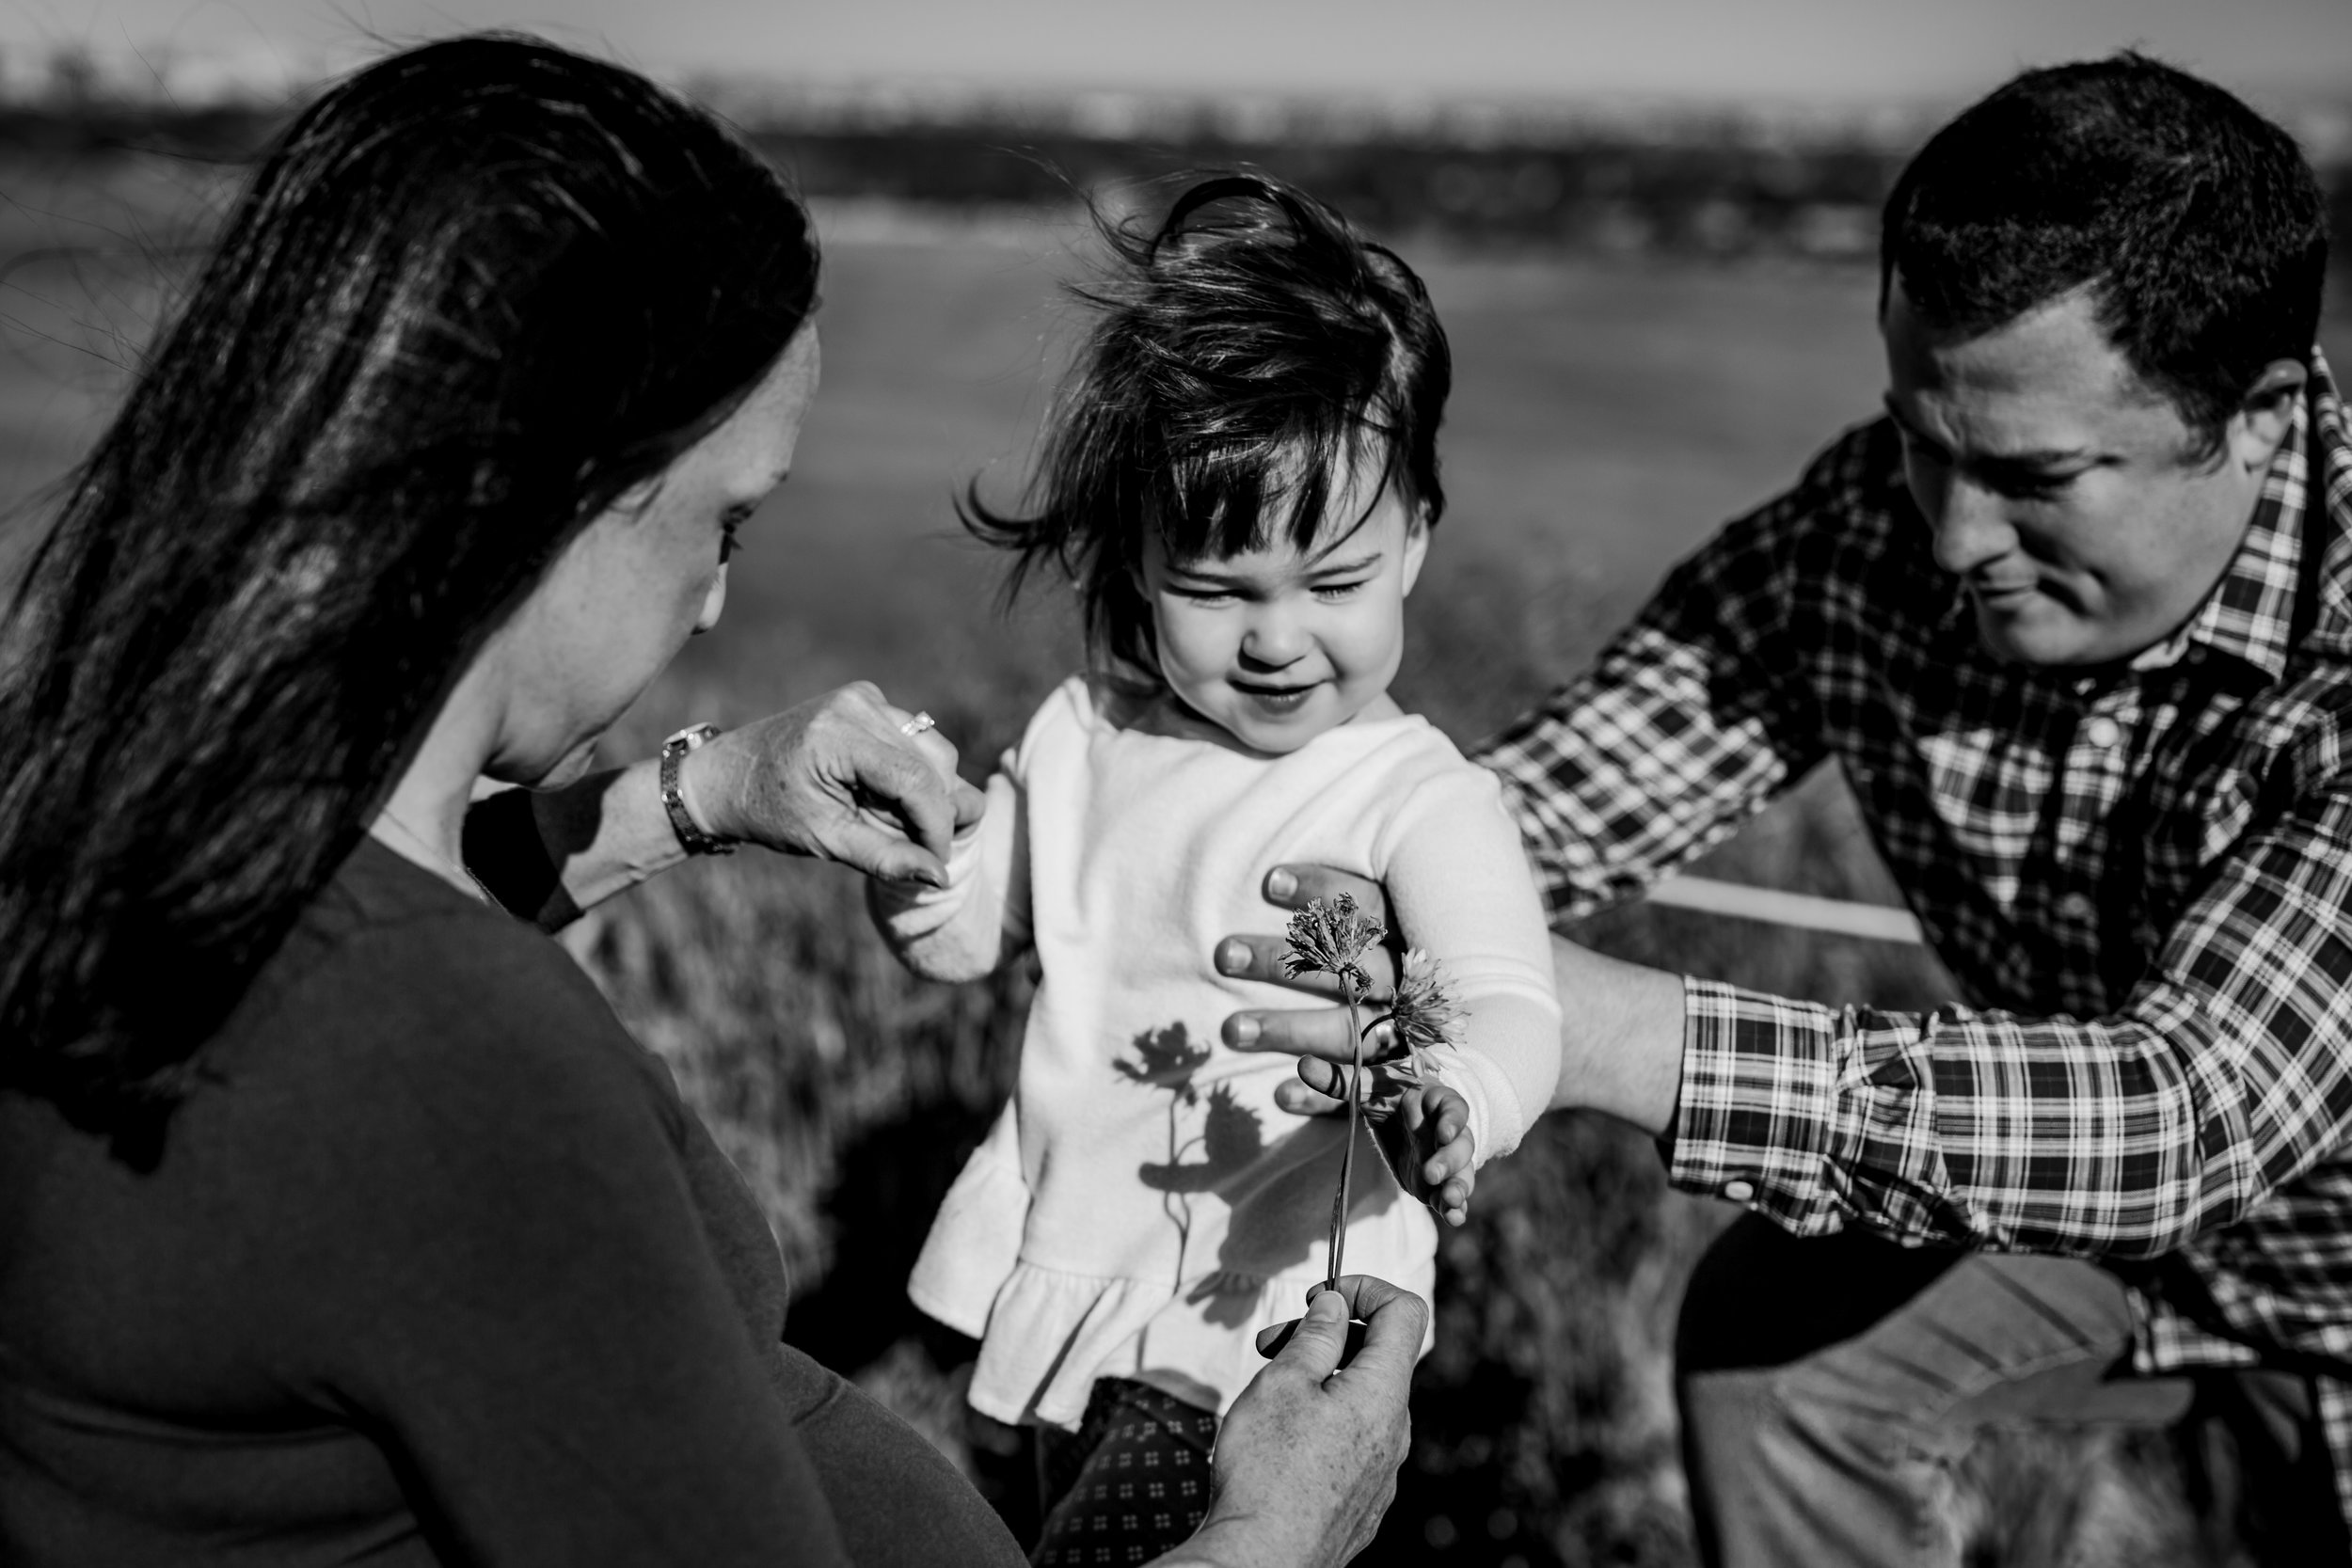 Orange County family photographer. Candid photo of mom and dad holding their daughter in the fields during maternity photo shoot at Quail Hill Trailhead Irvine